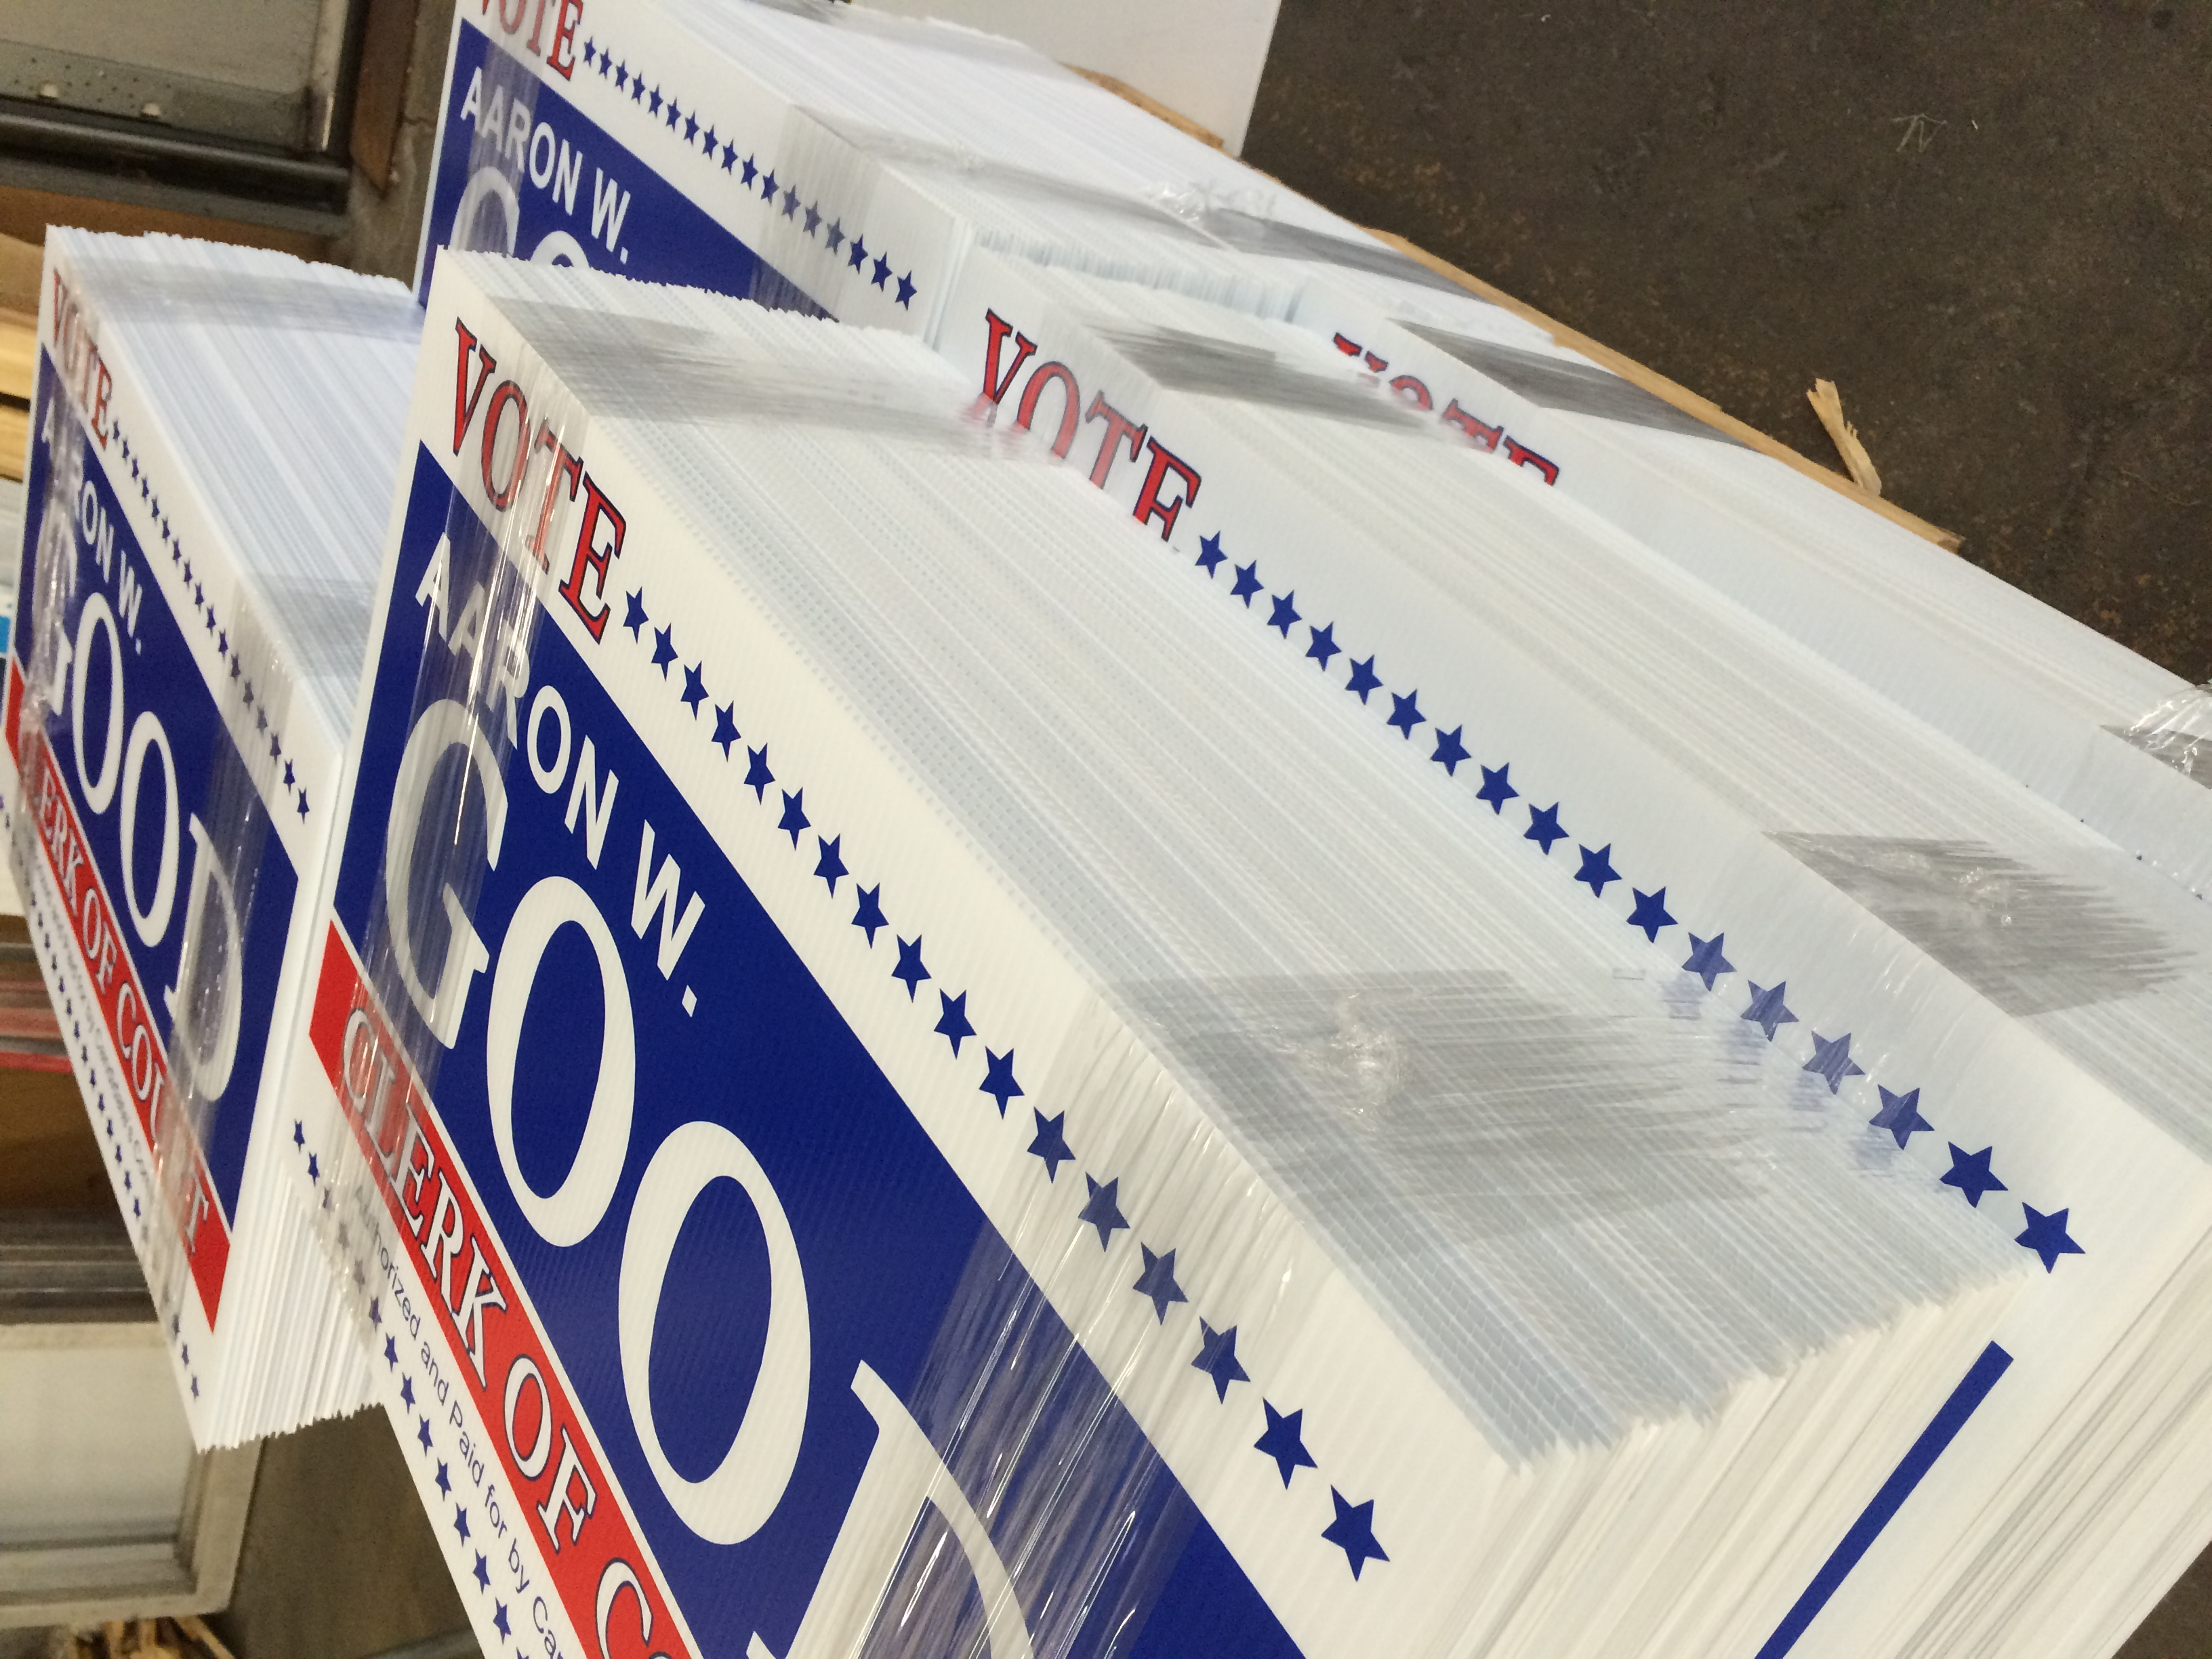 Corrugated Yard Signs - Des Moines, IA